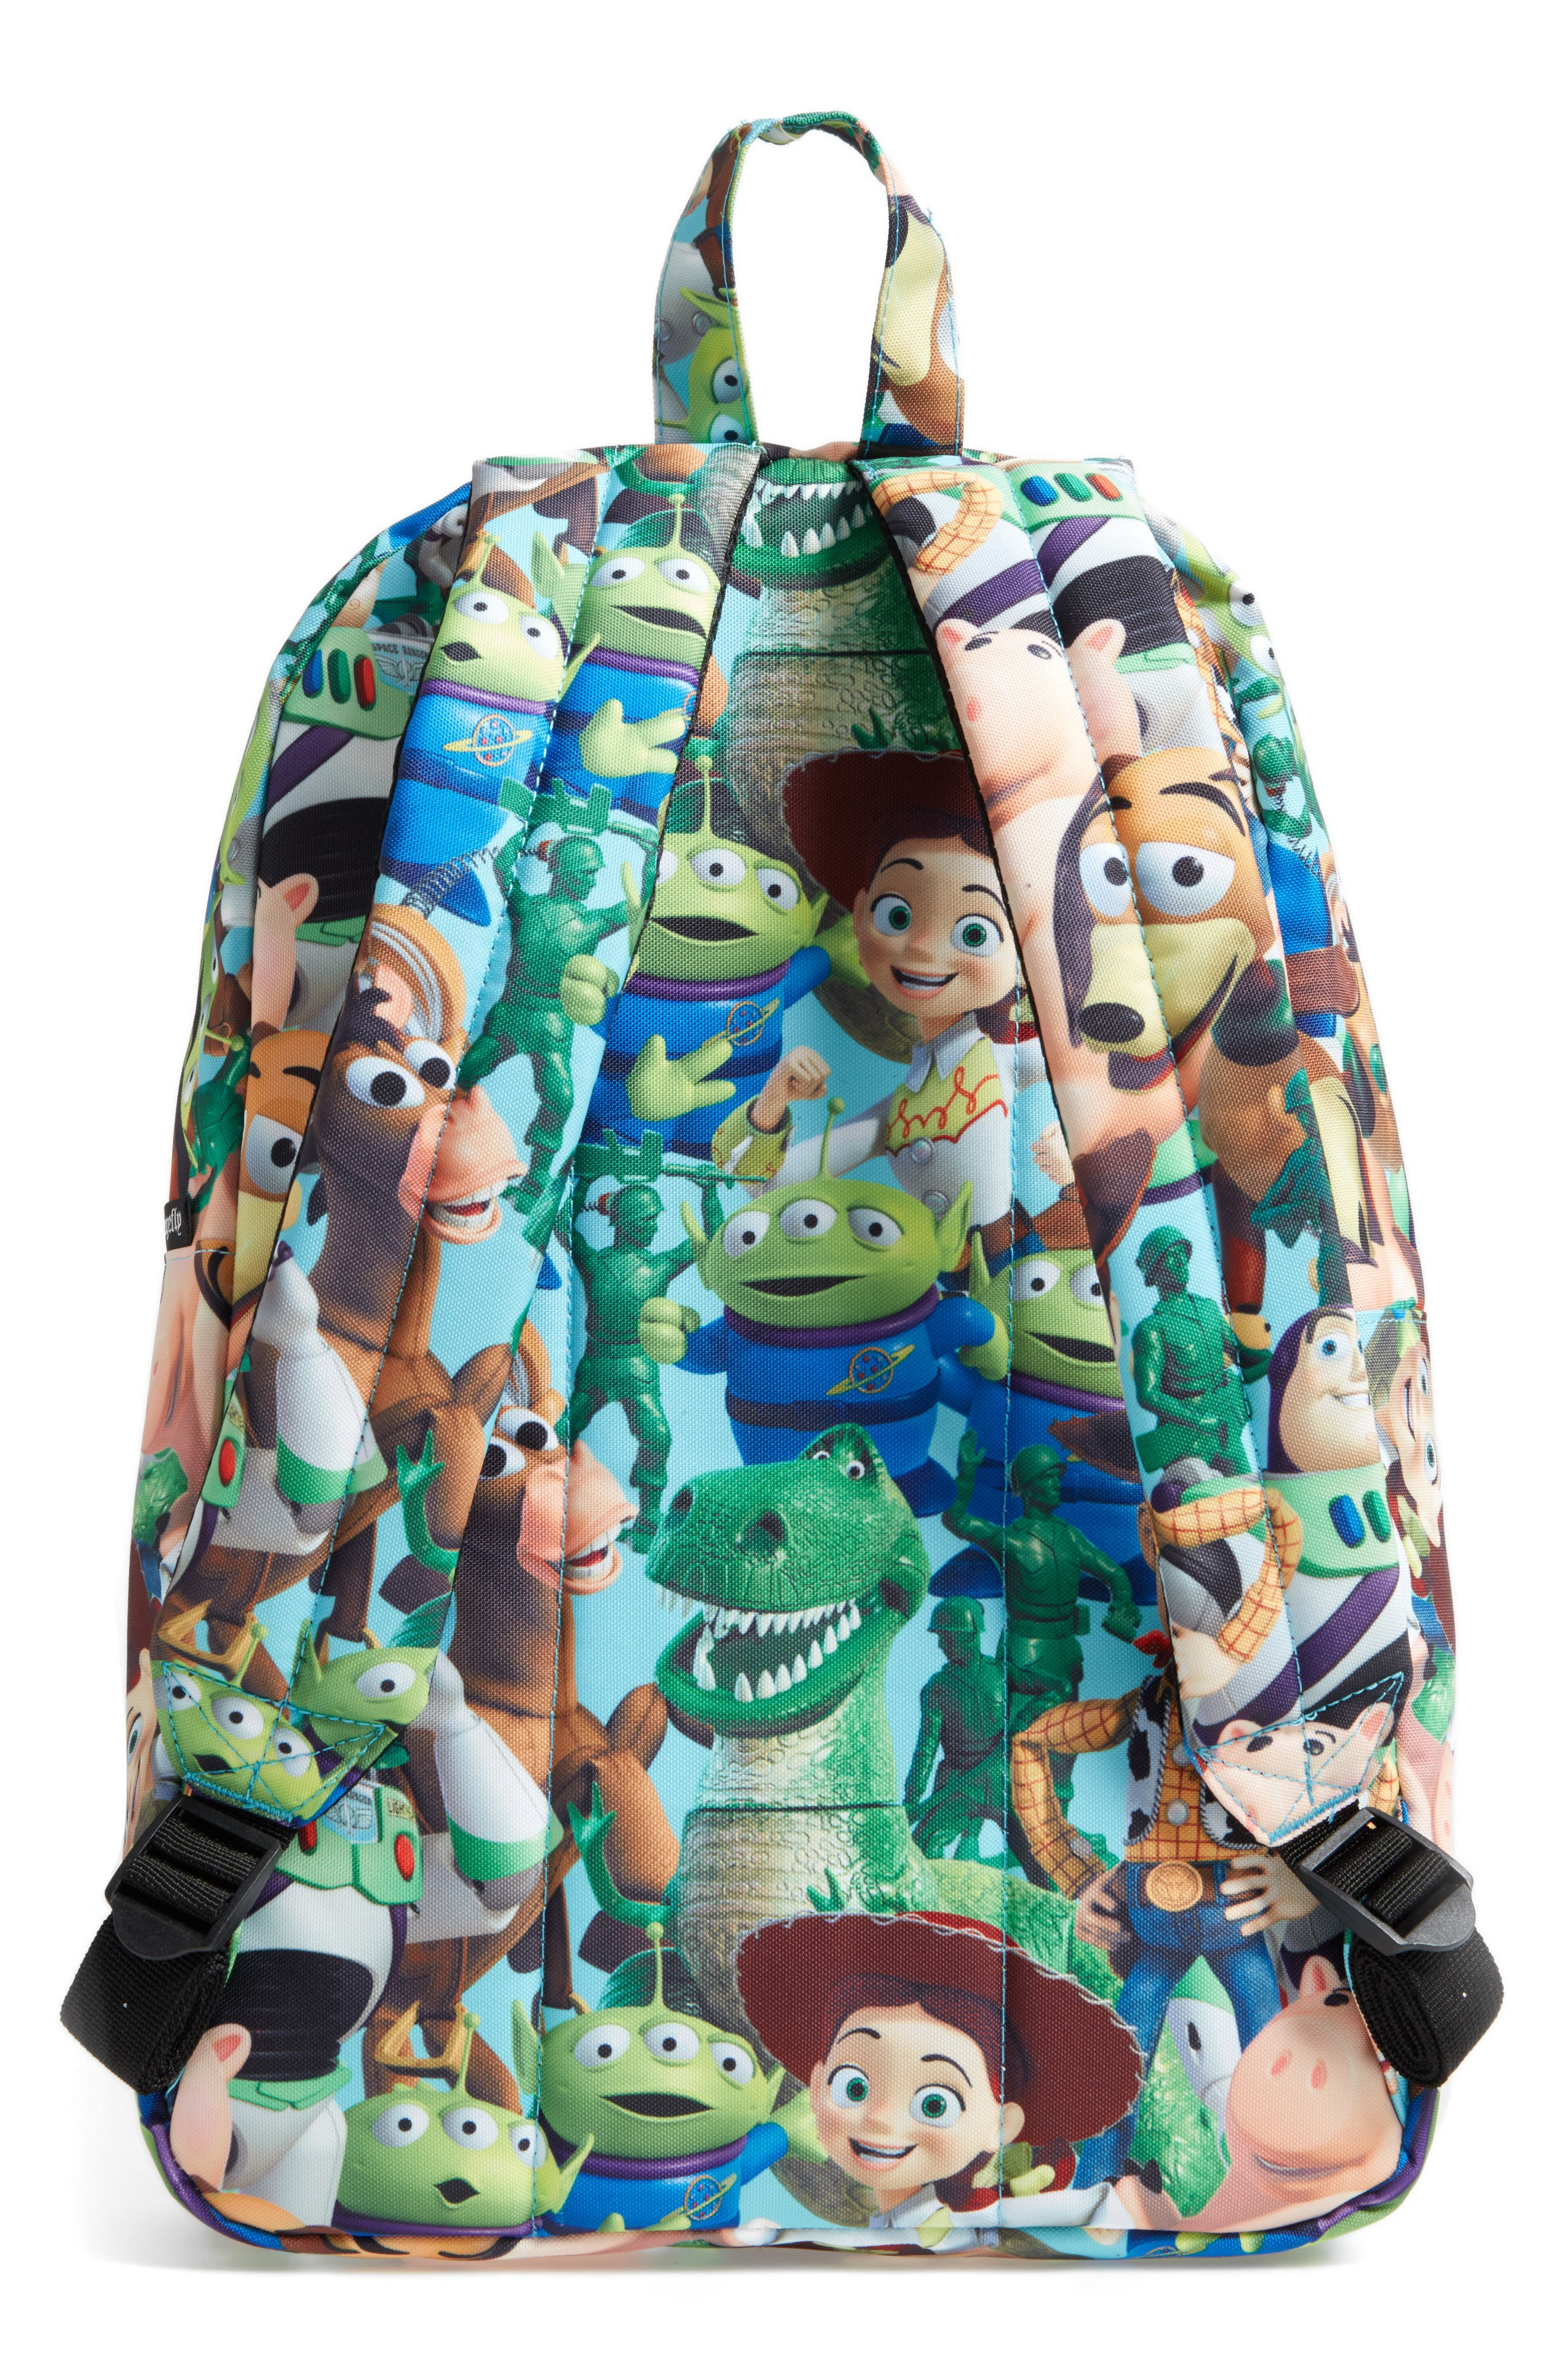 Disney<sup>®</sup> Toy Story Backpack,                             Alternate thumbnail 2, color,                             Blue Multi